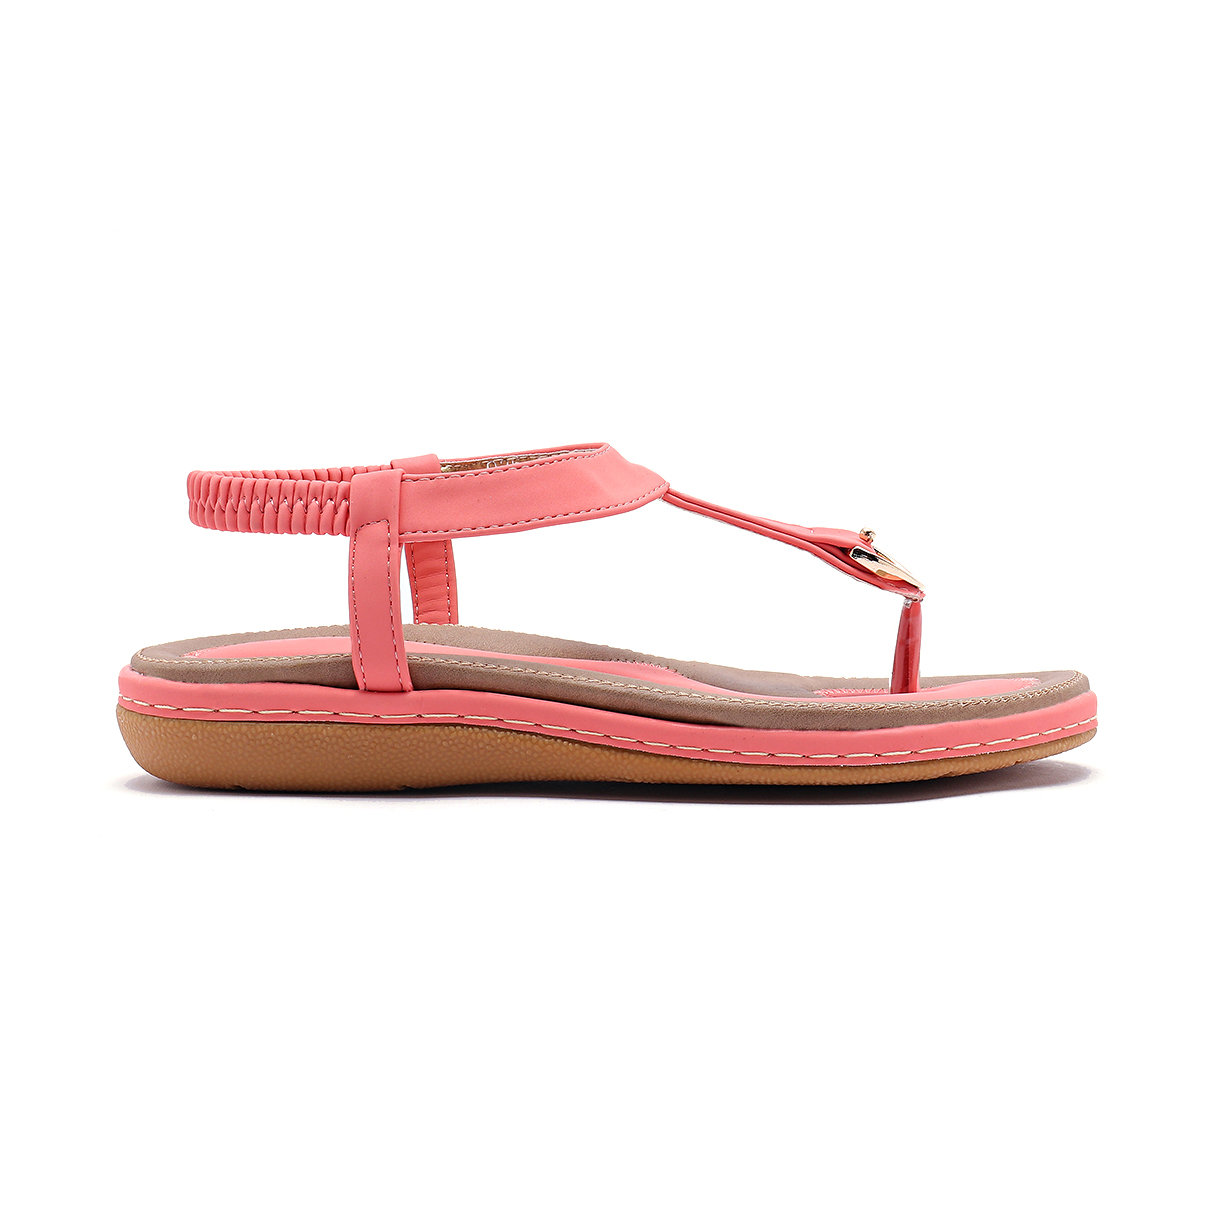 Contrast Color Flat Sandals in Pink brand new smt yamaha feeder ft 8 2mm feeder used in pick and place machine